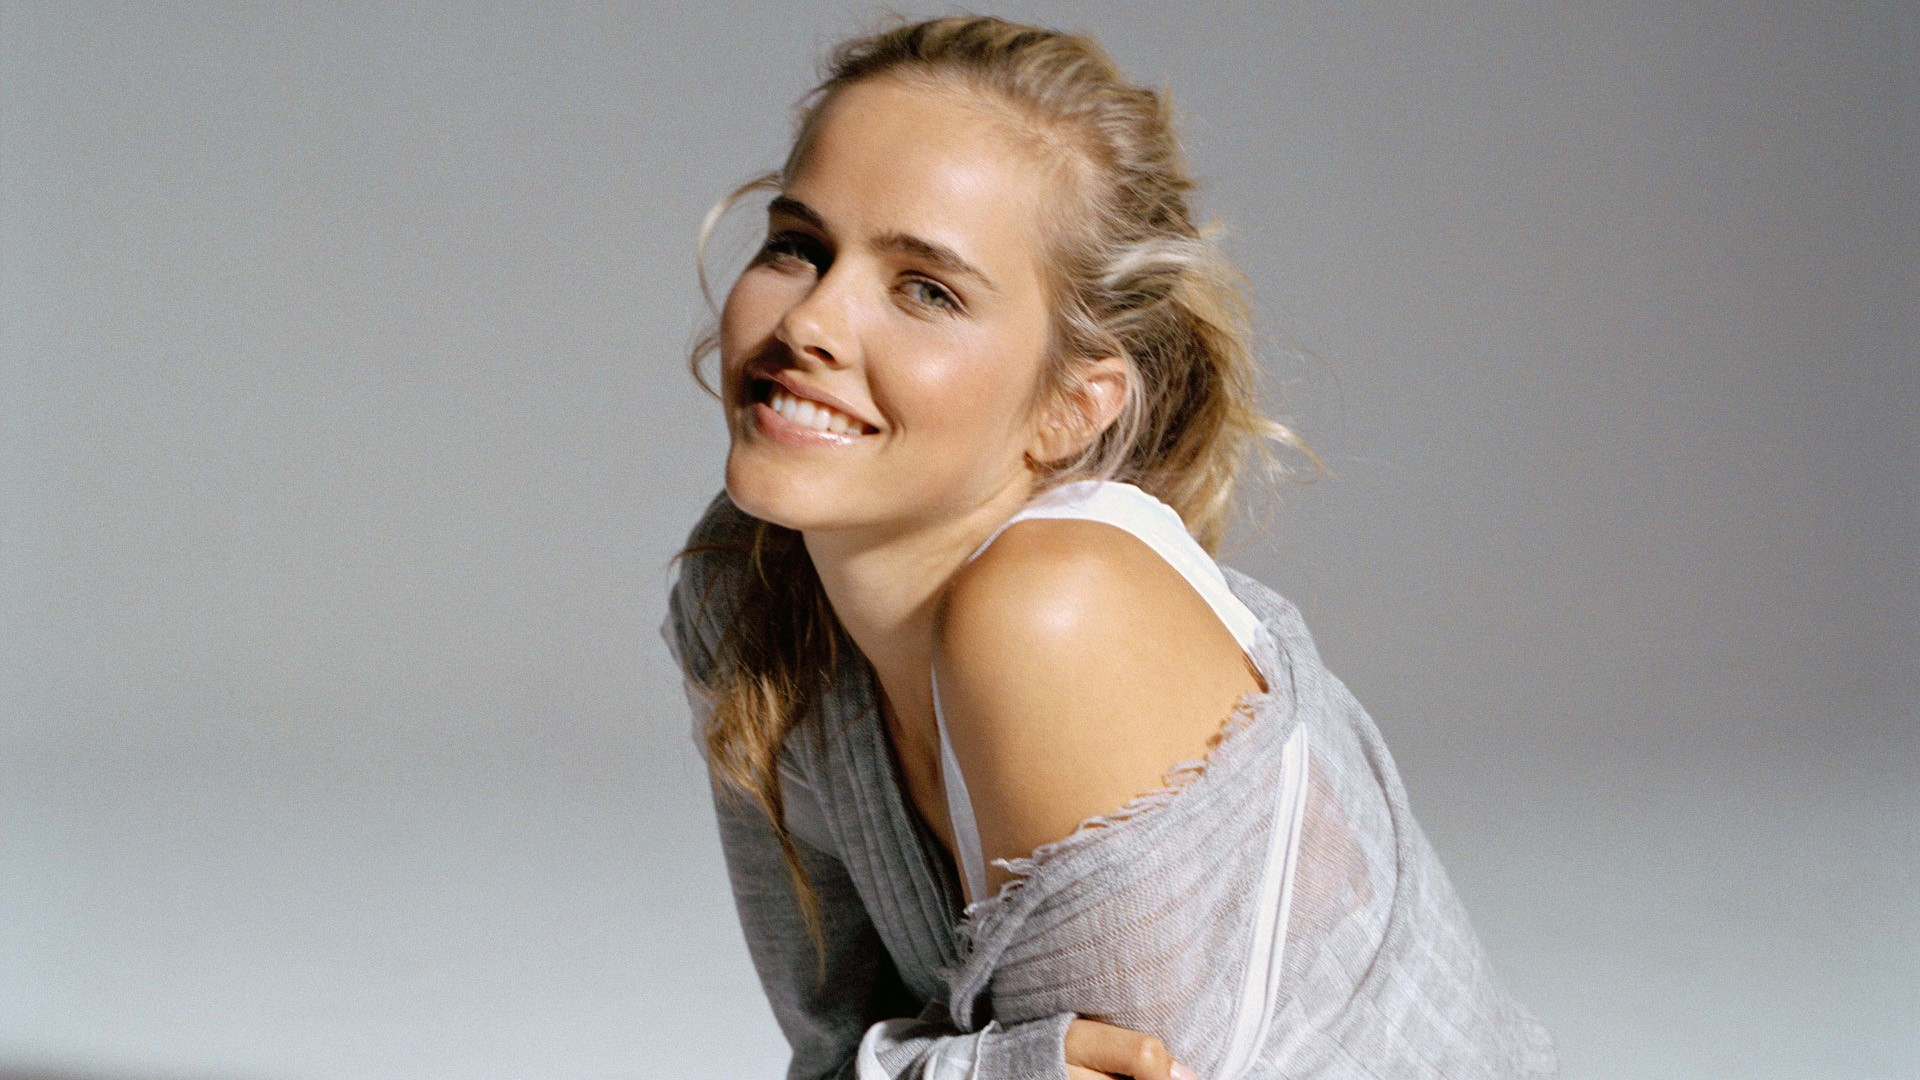 Cute Isabel Lucas Wallpaper 24877 19201080 px fond ecran 1920x1080